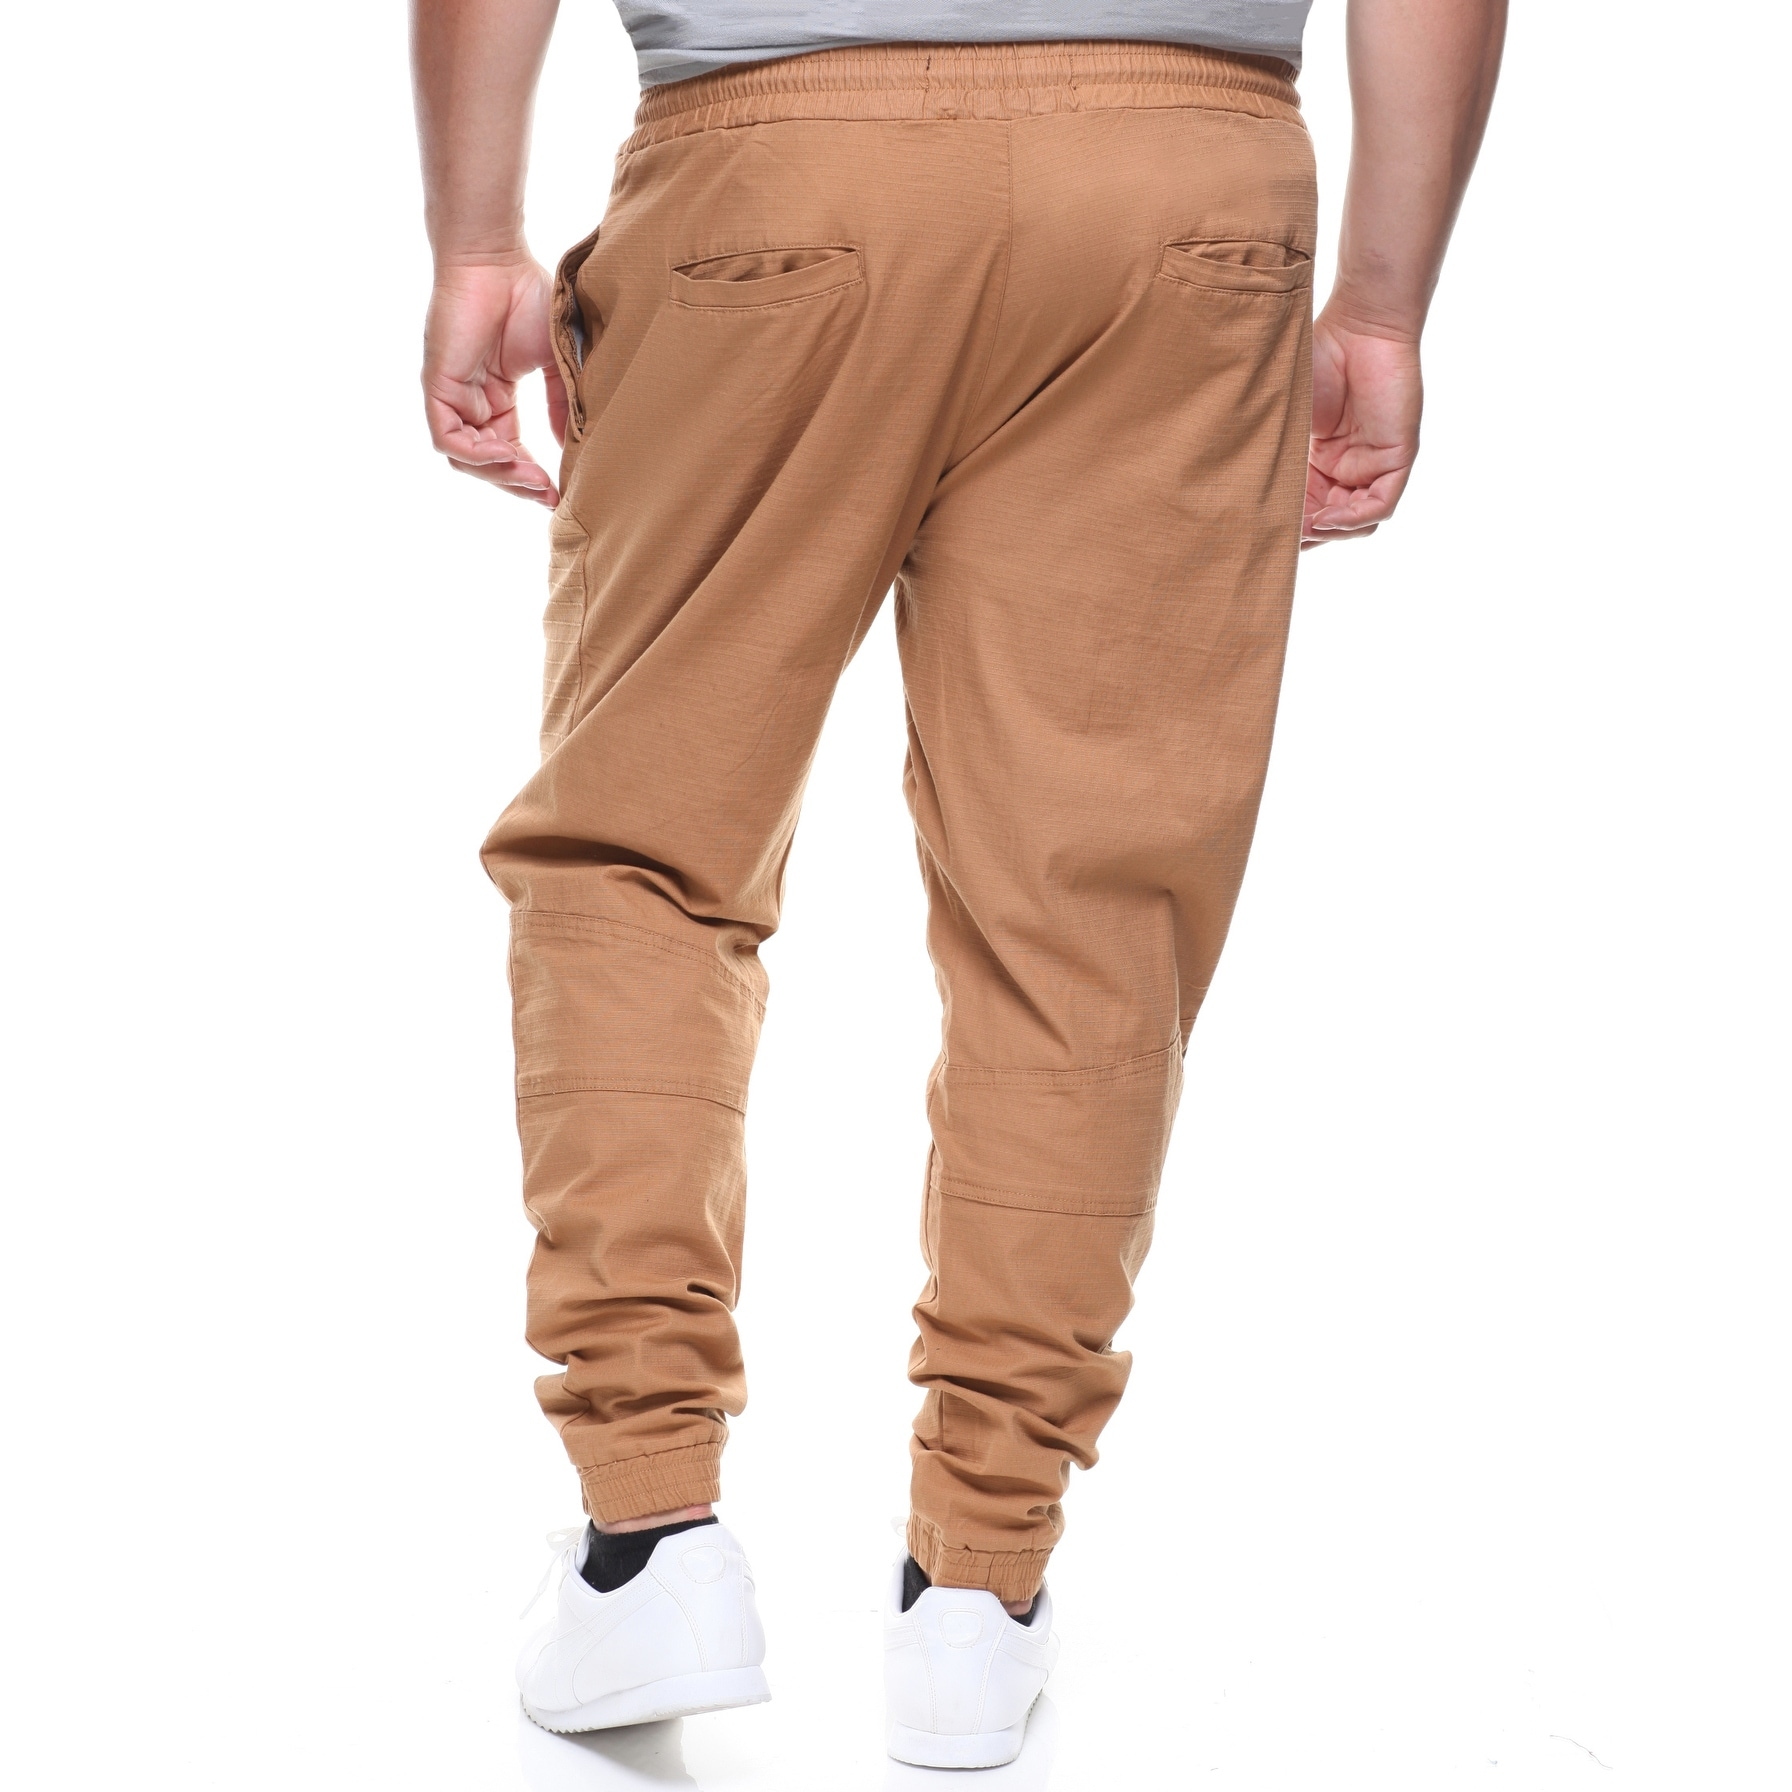 958611fd2c45b Shop Fly Society Big Men's Stretch Twill Ripstop Jogger Pant - On Sale -  Free Shipping On Orders Over $45 - Overstock - 18527936